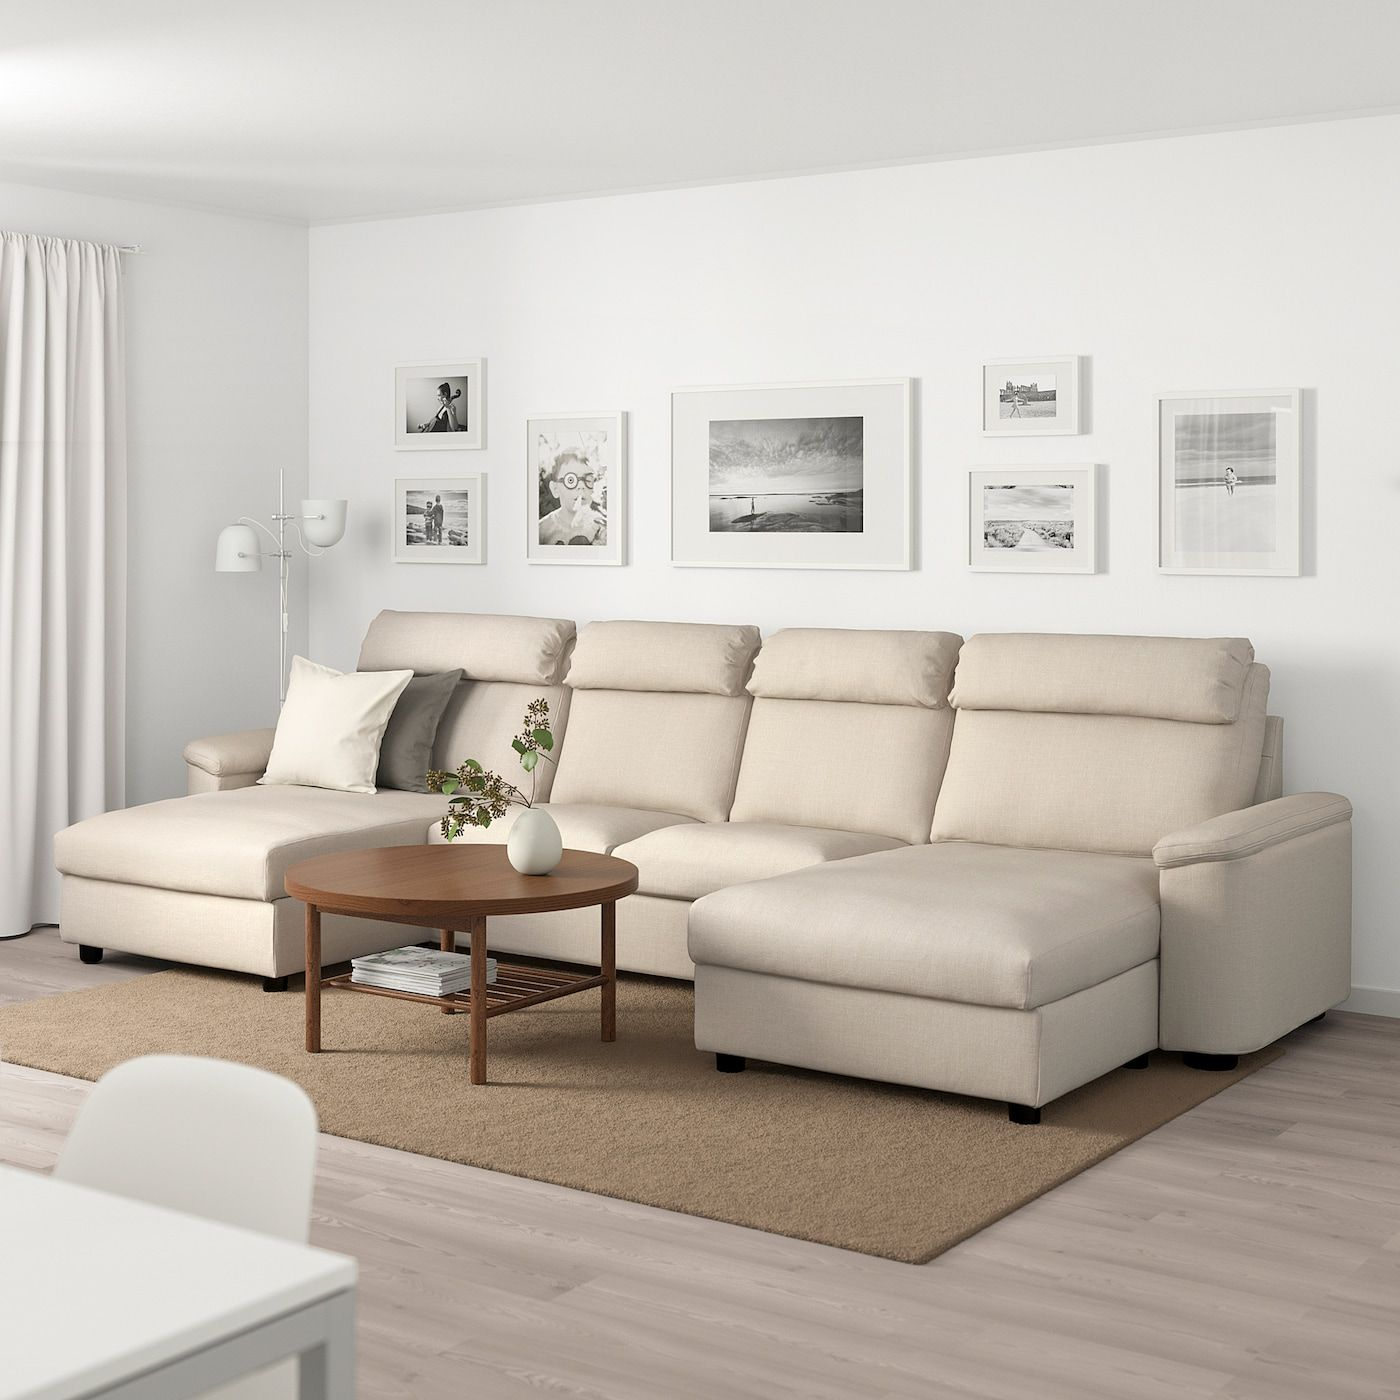 Lidhult Sectional 4 Seat With Chaise Gassebol Light Beige In